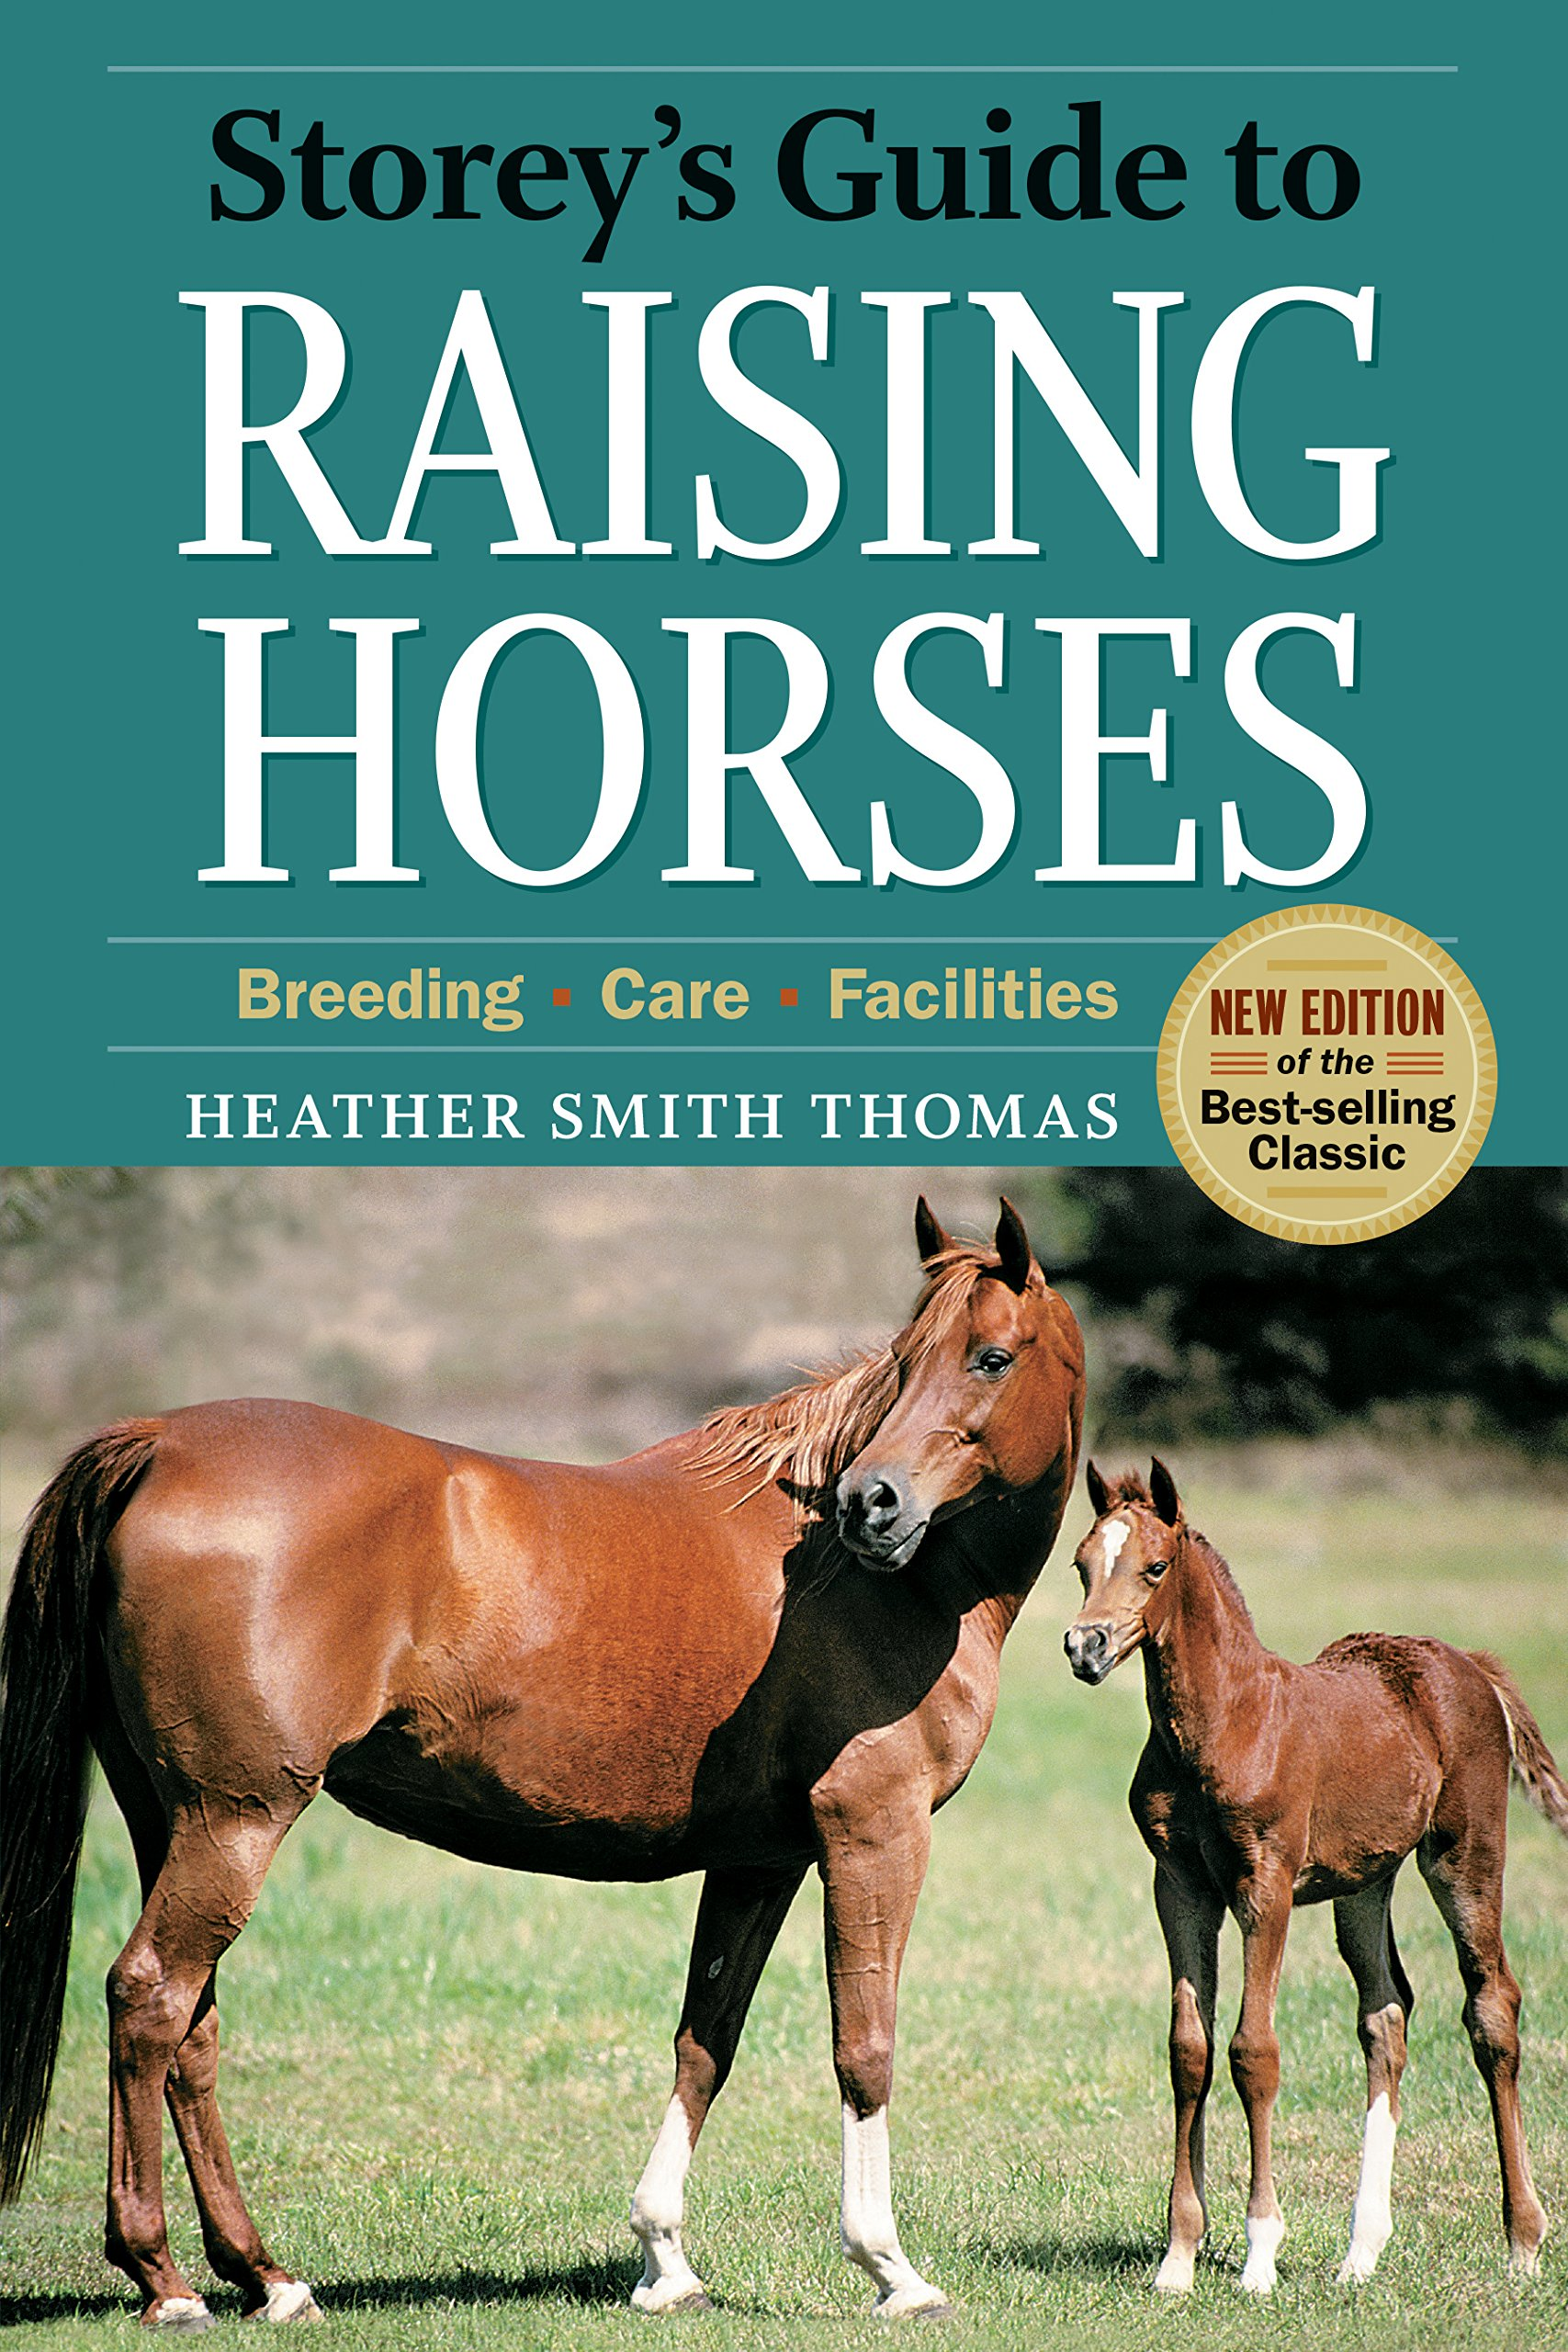 Storey's Guide to Raising Horses, 2nd Edition: Breeding, Care, Facilities pdf